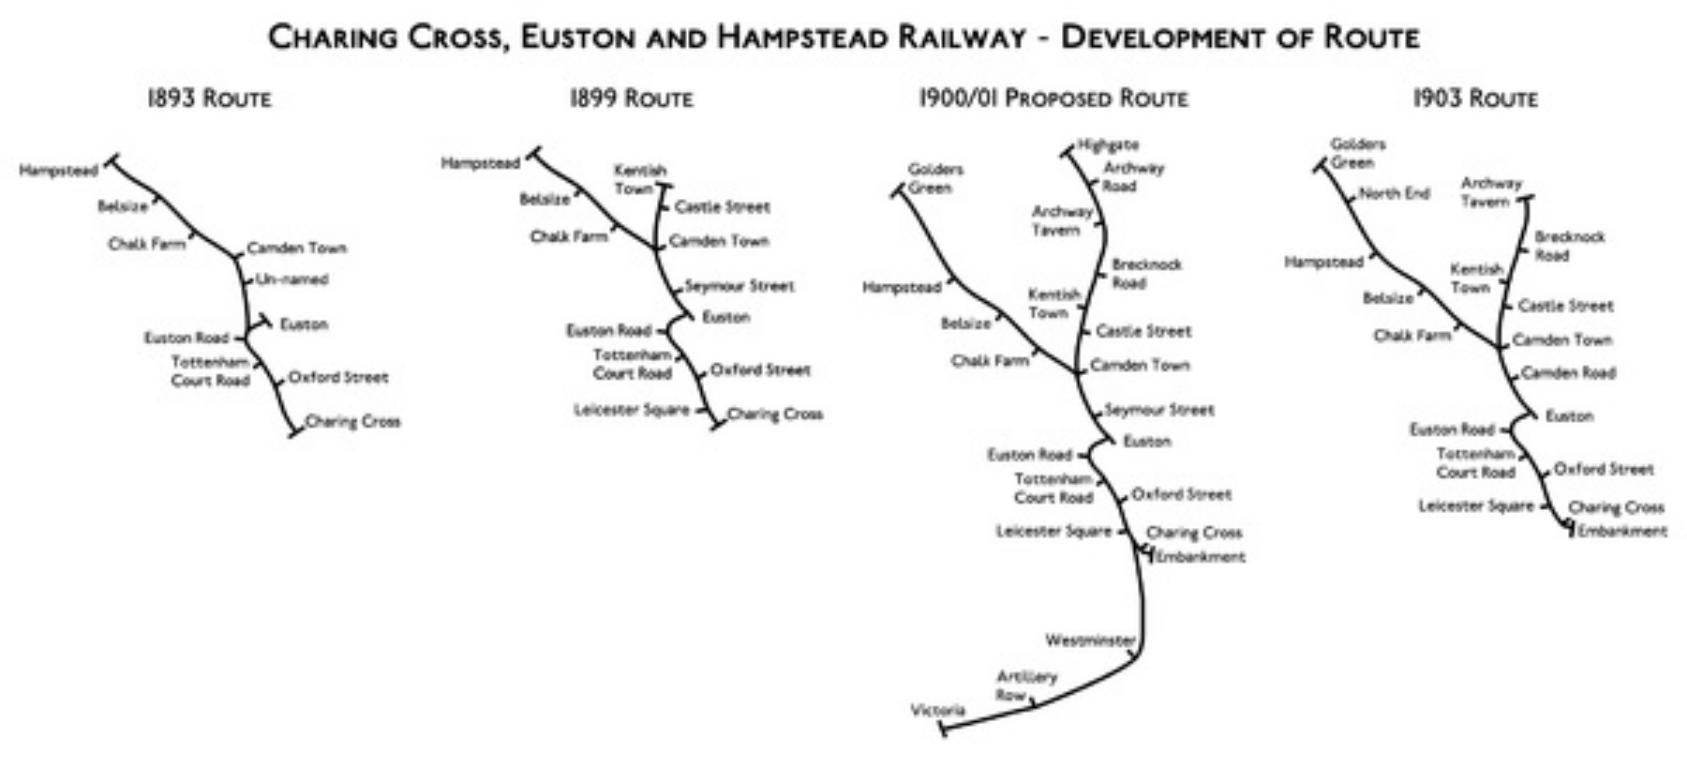 Charring Cross, Euston and Hampsted Railway development